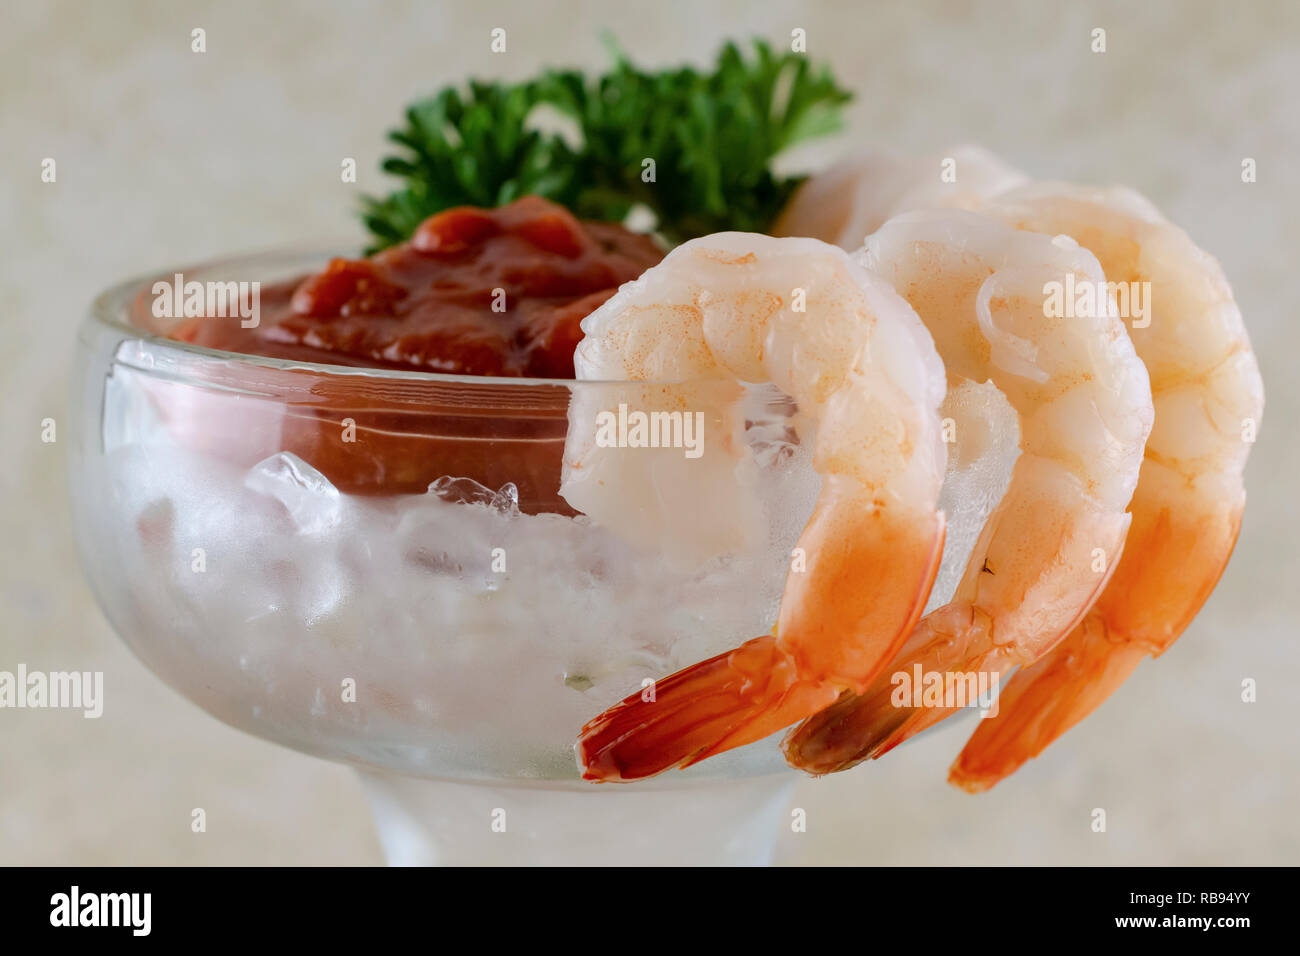 Shrimp cocktail in a margarita glass with shrimp hung on outside of glass. Cocktail sauce, ice, and parsley inside of cup.  Tan background. - Stock Image